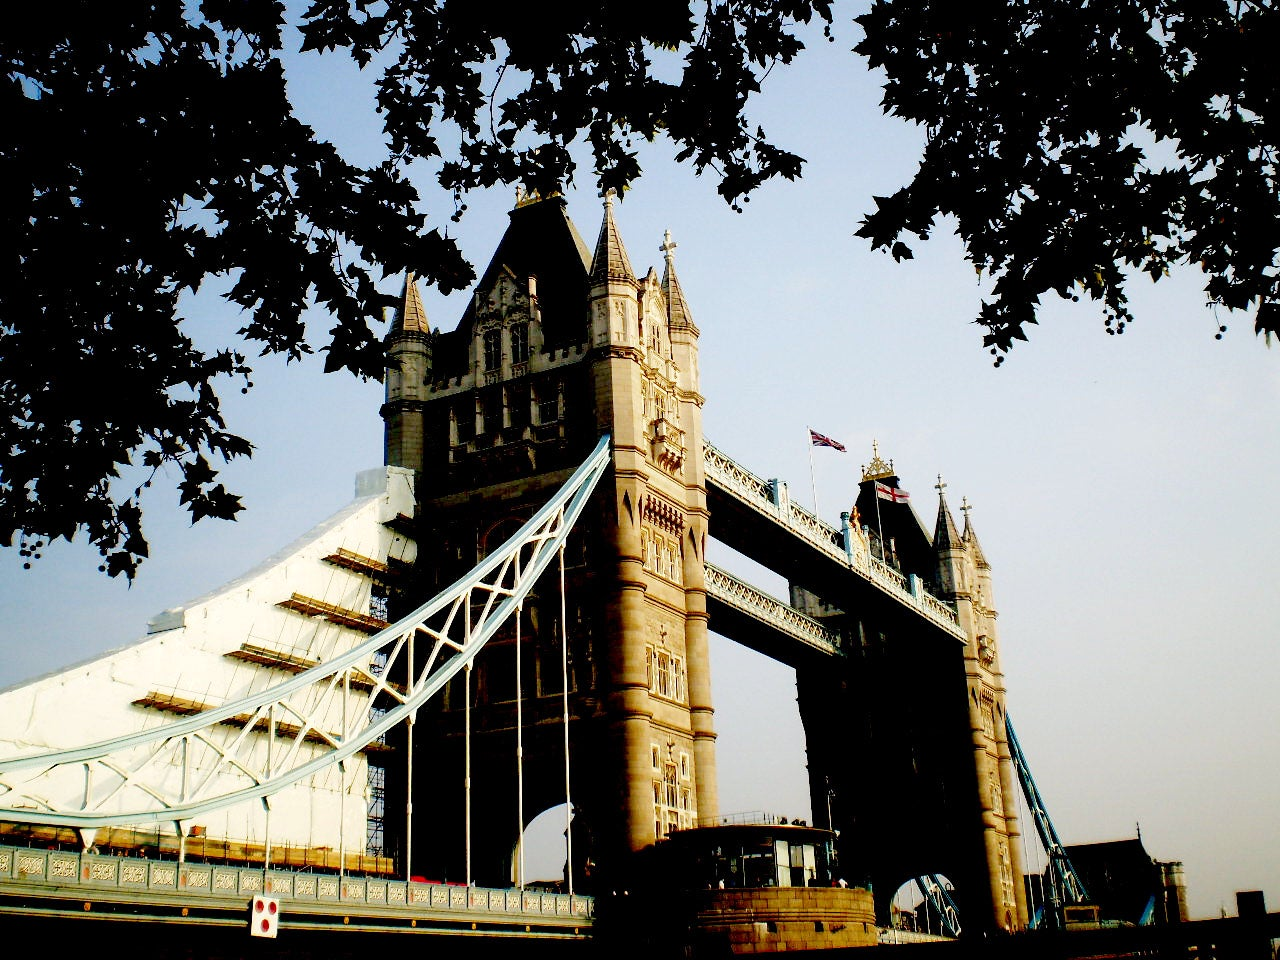 Amarillo en Tower Bridge